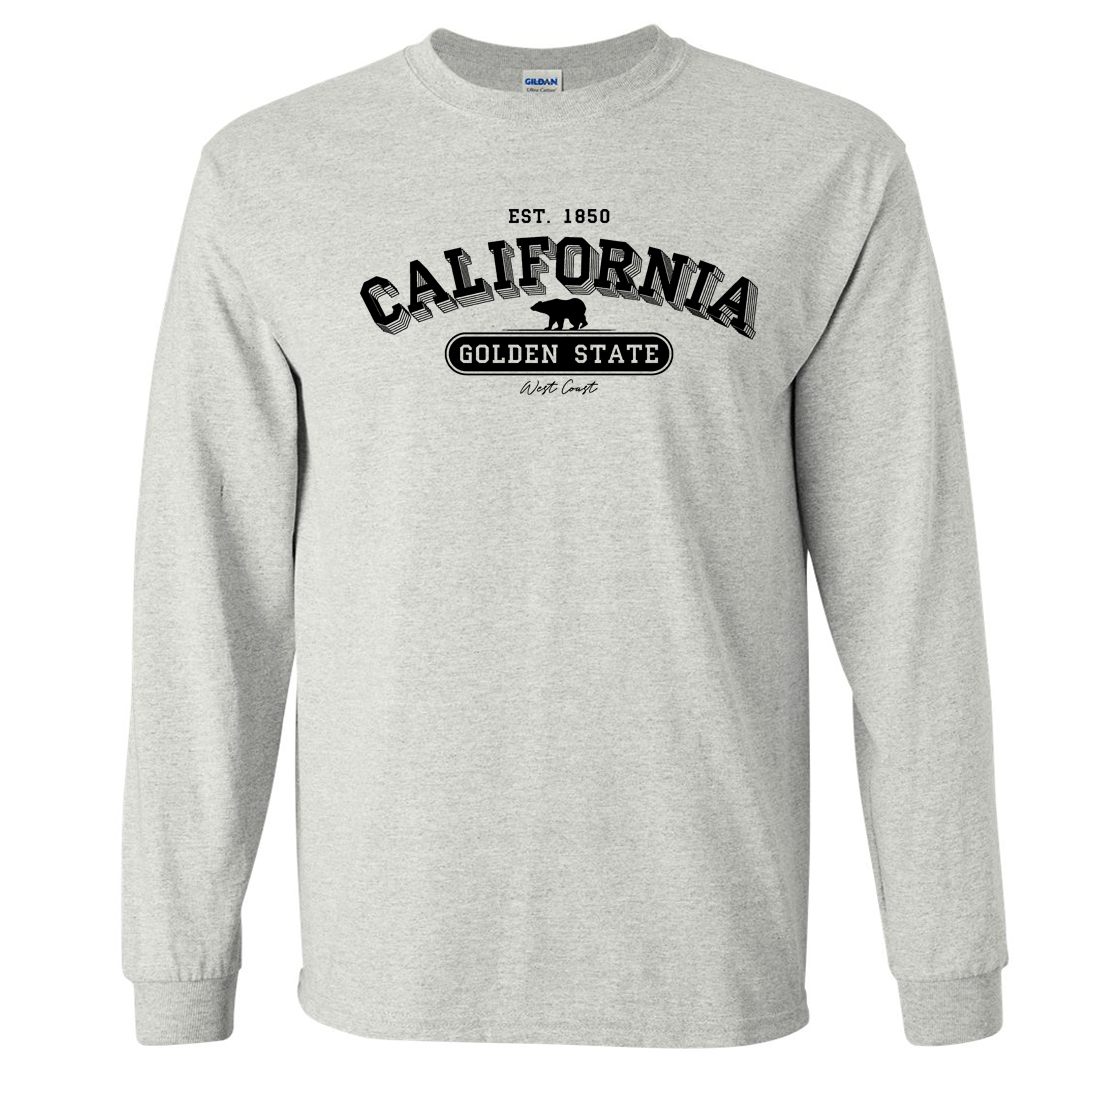 California Golden State 1850 Long Sleeve Shirt